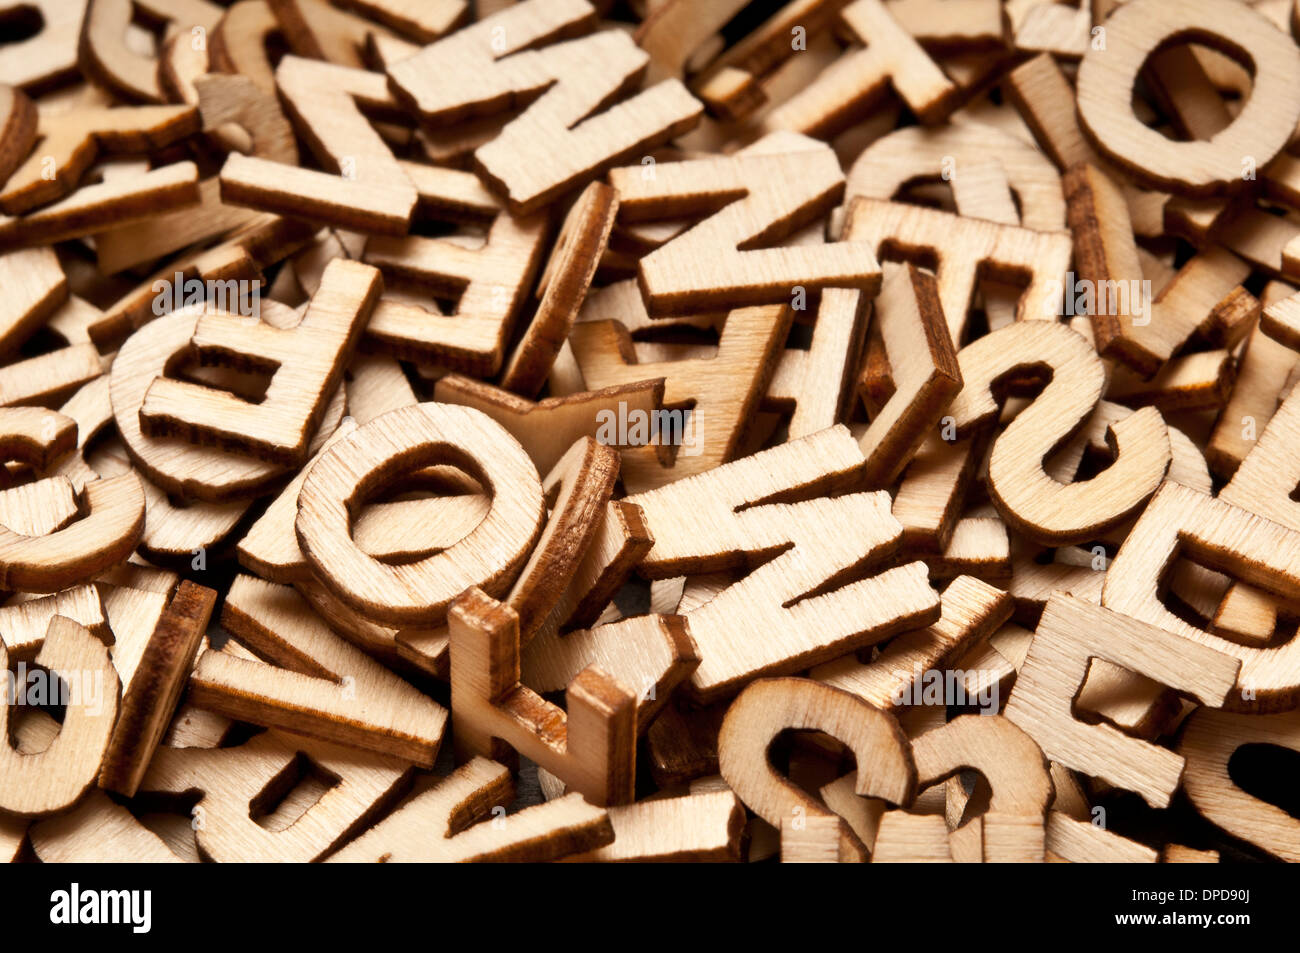 background of wooden alphabet letters - Stock Image